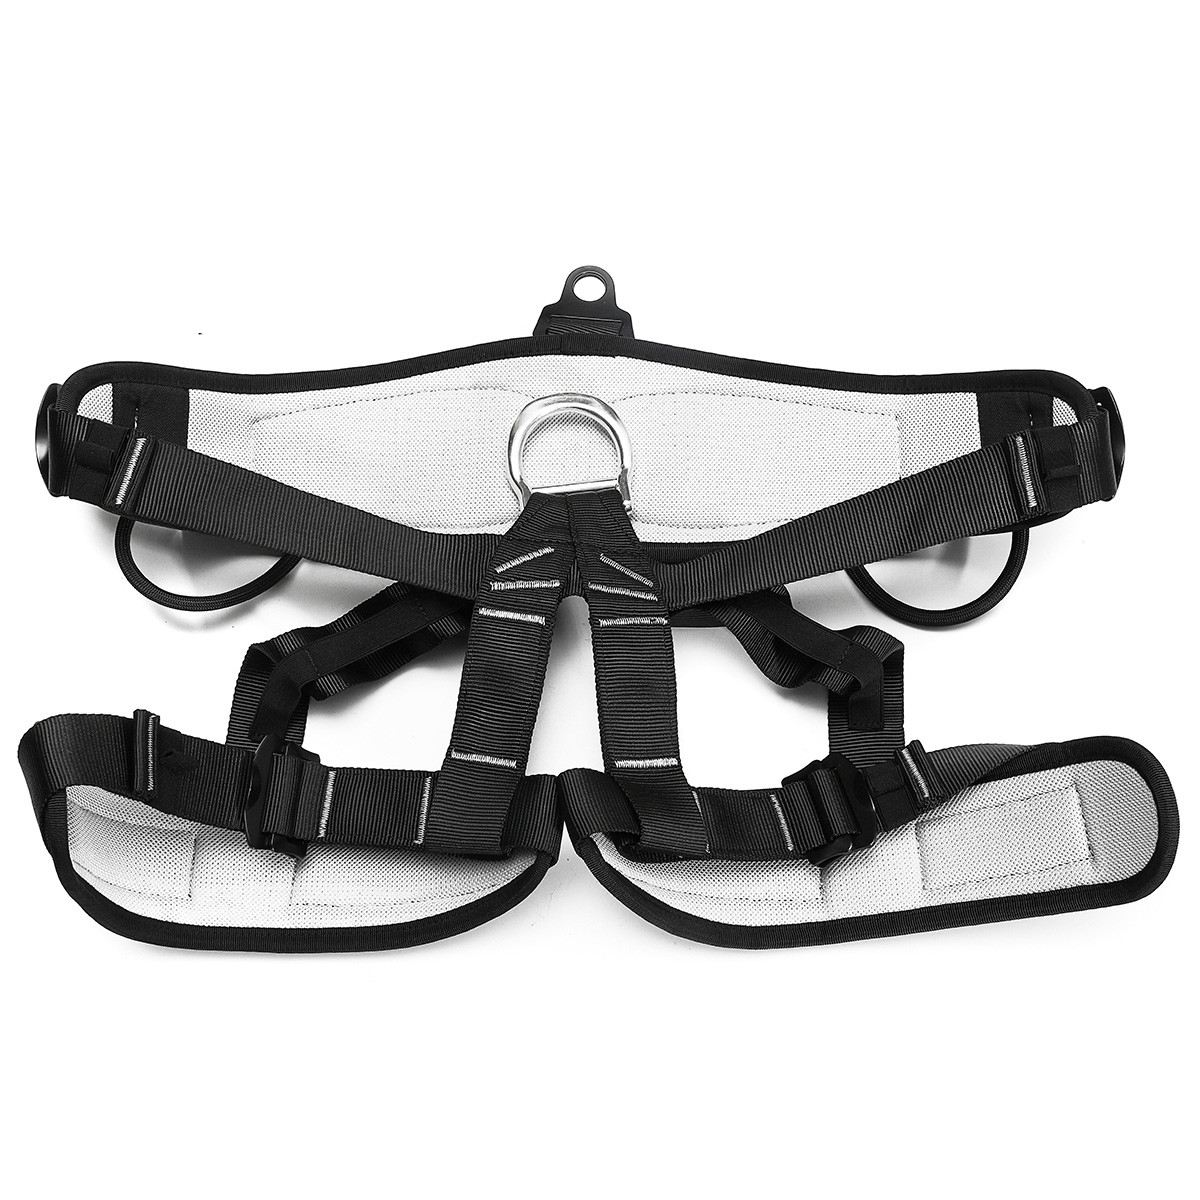 NEW Pro Tree Carving Fall Protection Rock Climbing Equip Gear Rappelling Harness  Workplace Safety xinda outdoor professional climbing mountaineering rock caving rescue safety belt polyester bust harness rappelling safety belt